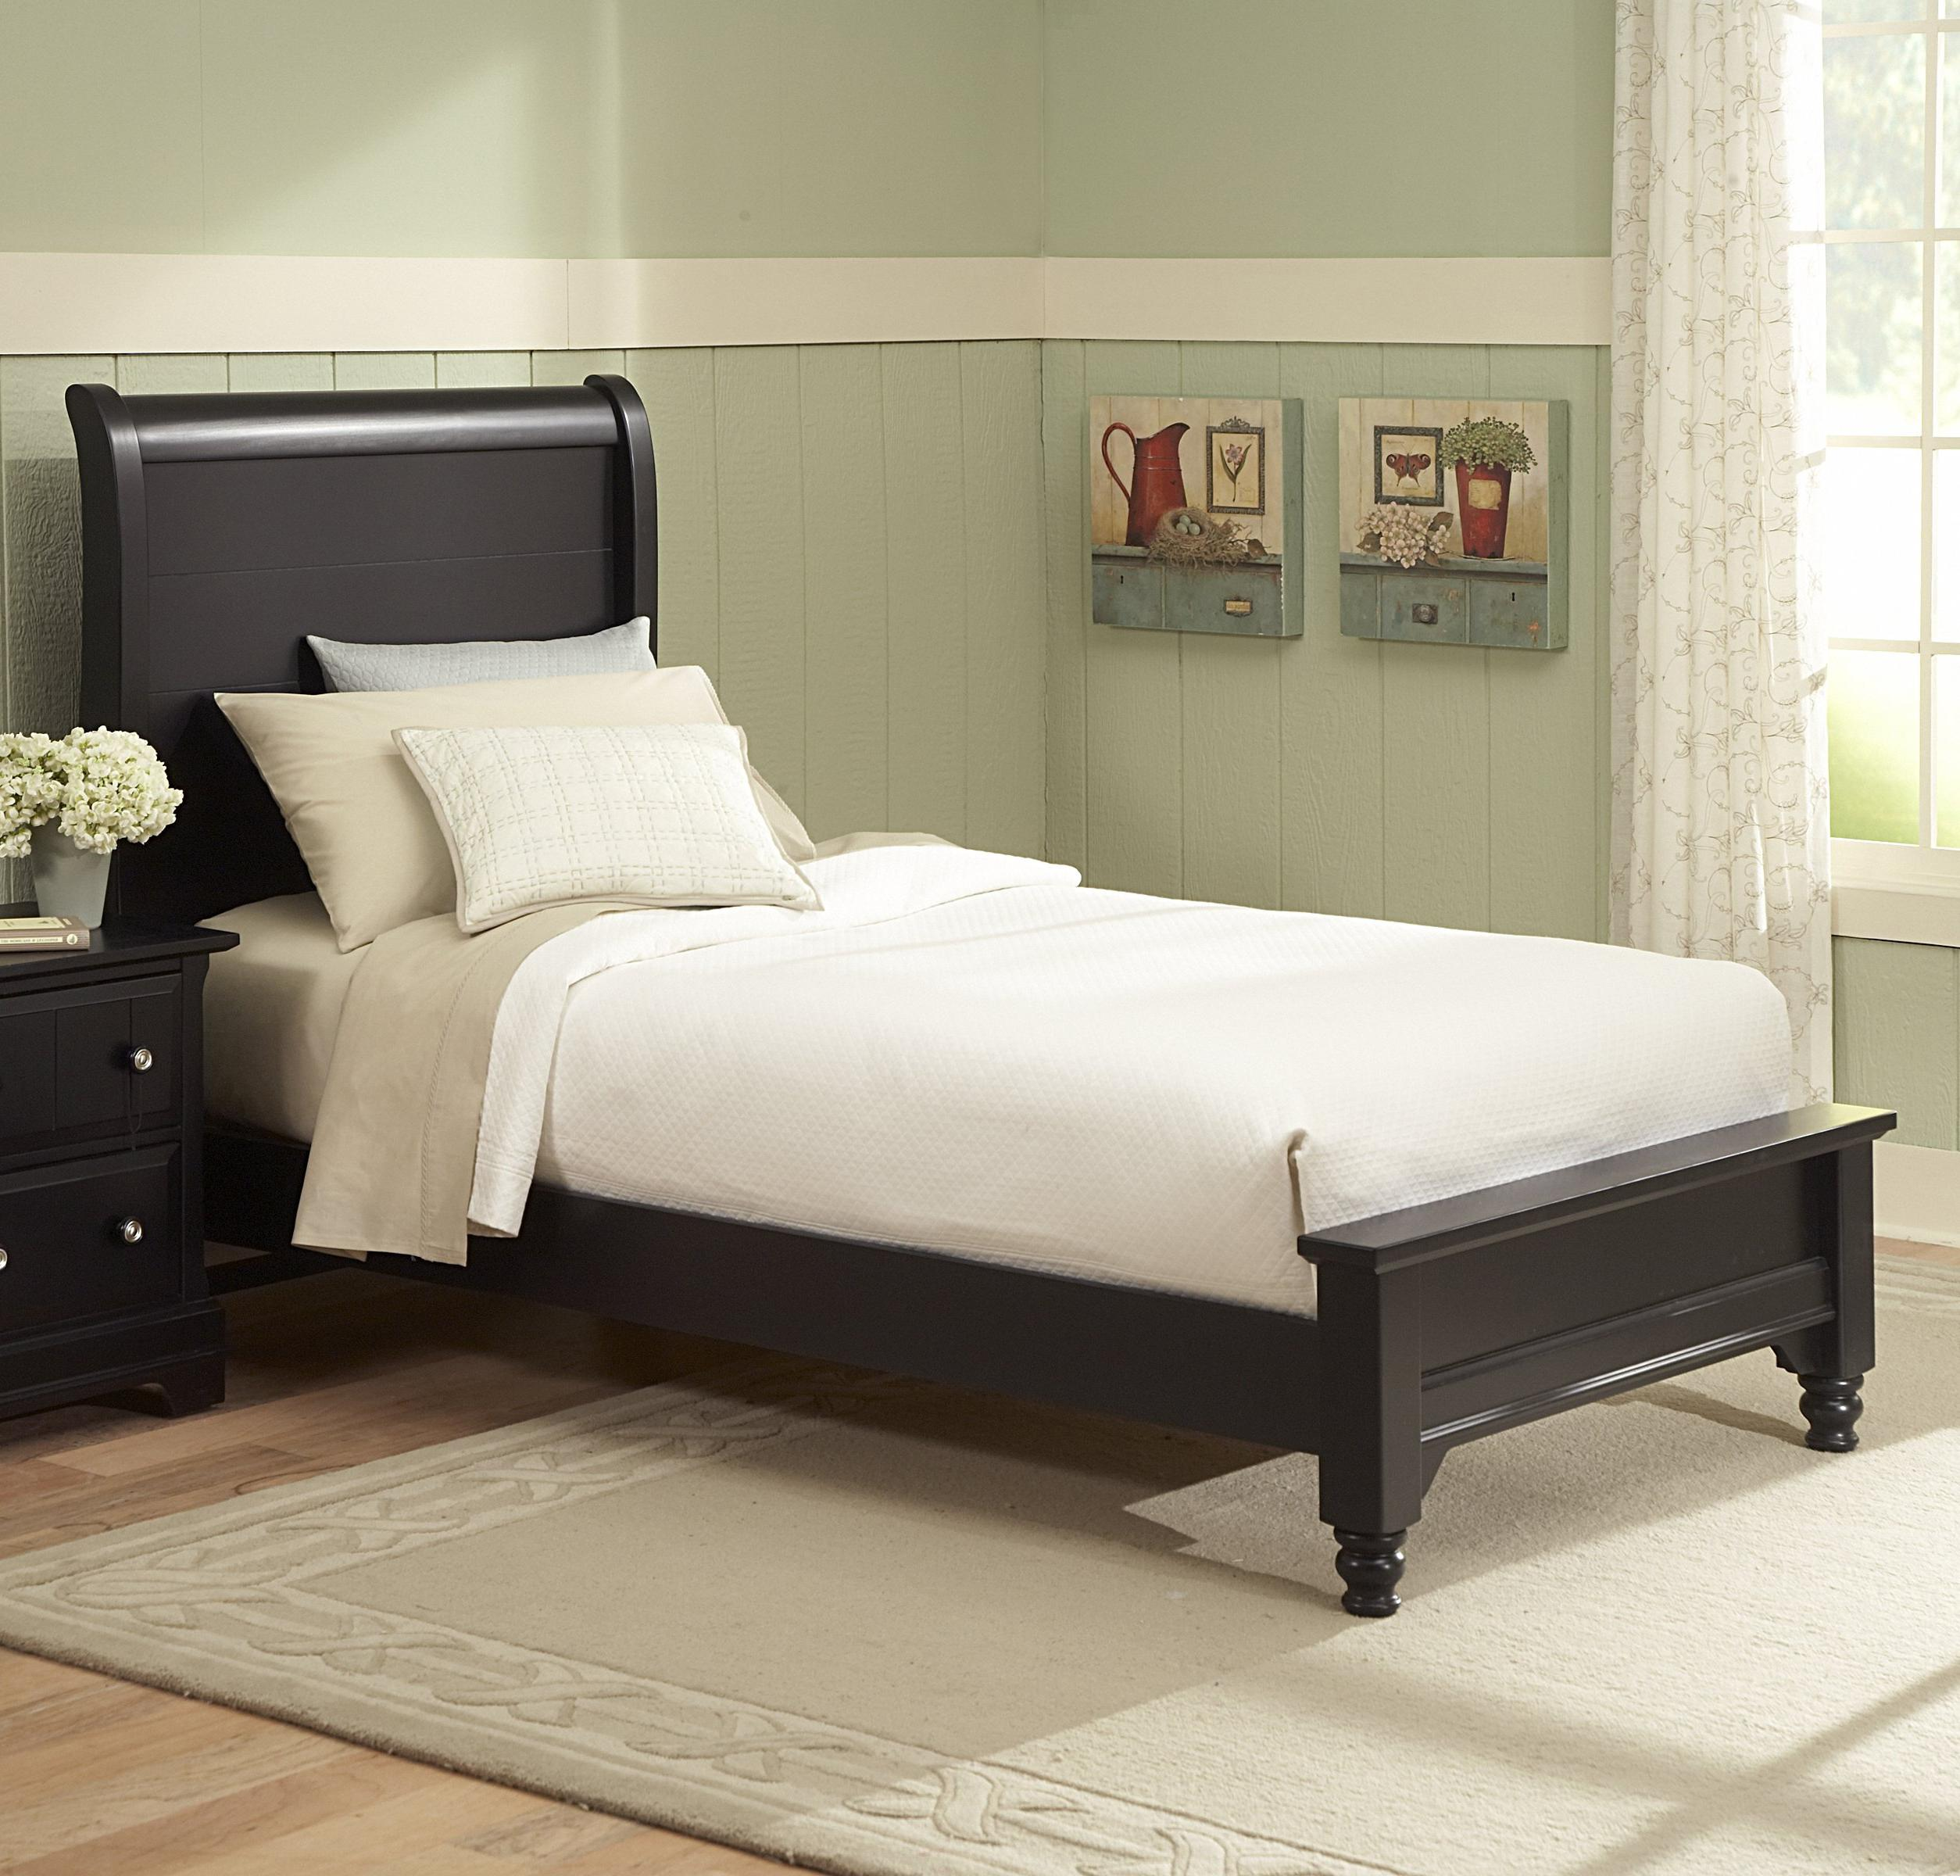 Vaughan Bassett Cottage Queen Sleigh Bed w/ Low Footboard  - Item Number: BB16-553+955+922